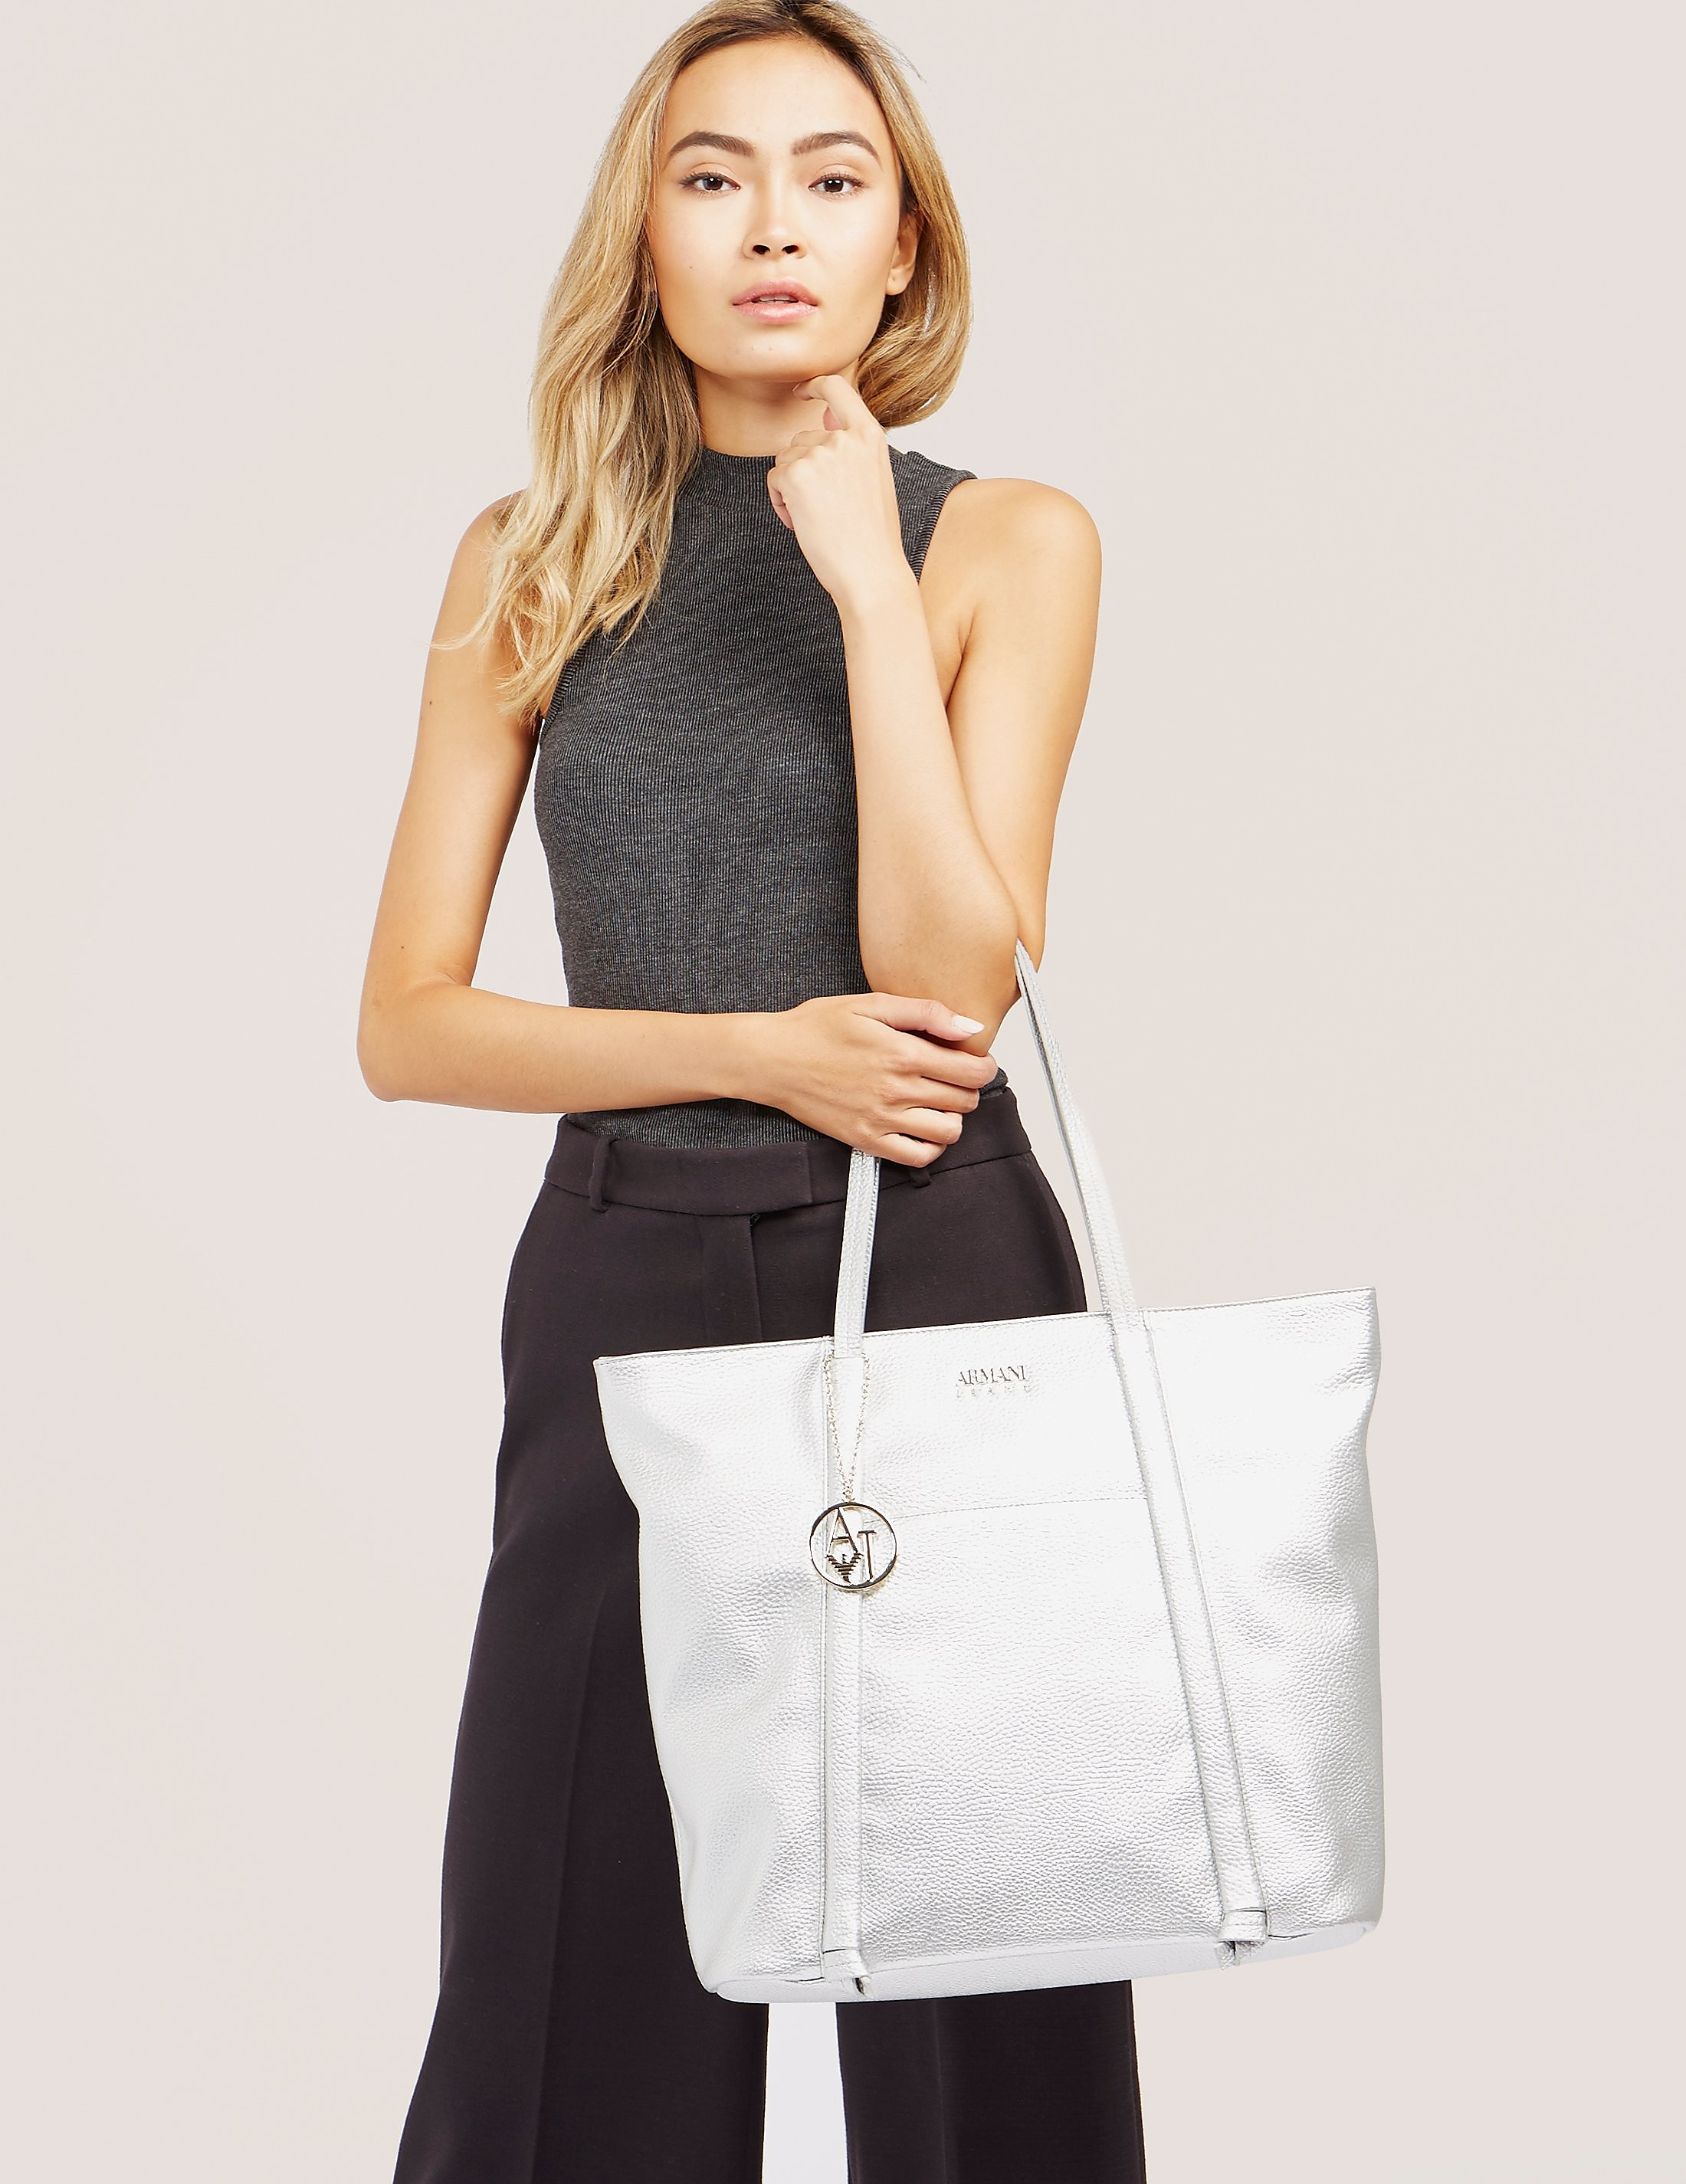 Armani Jeans Metallic Shopper Bag